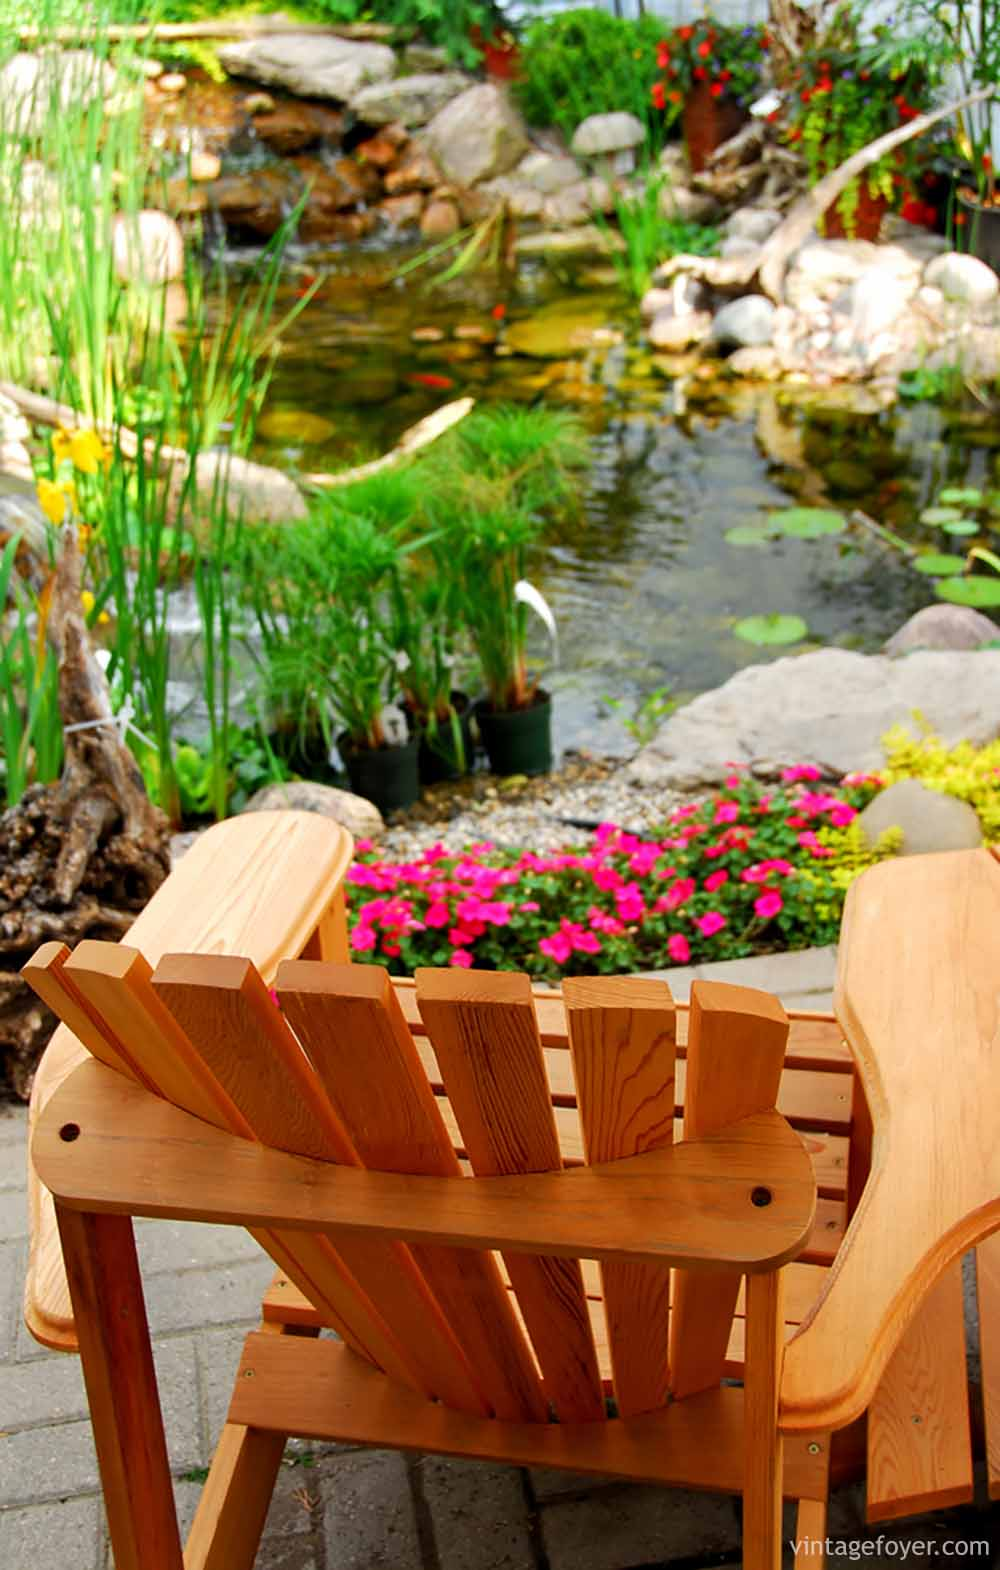 42 incredibly beautiful backyard ponds for your inspiration ...